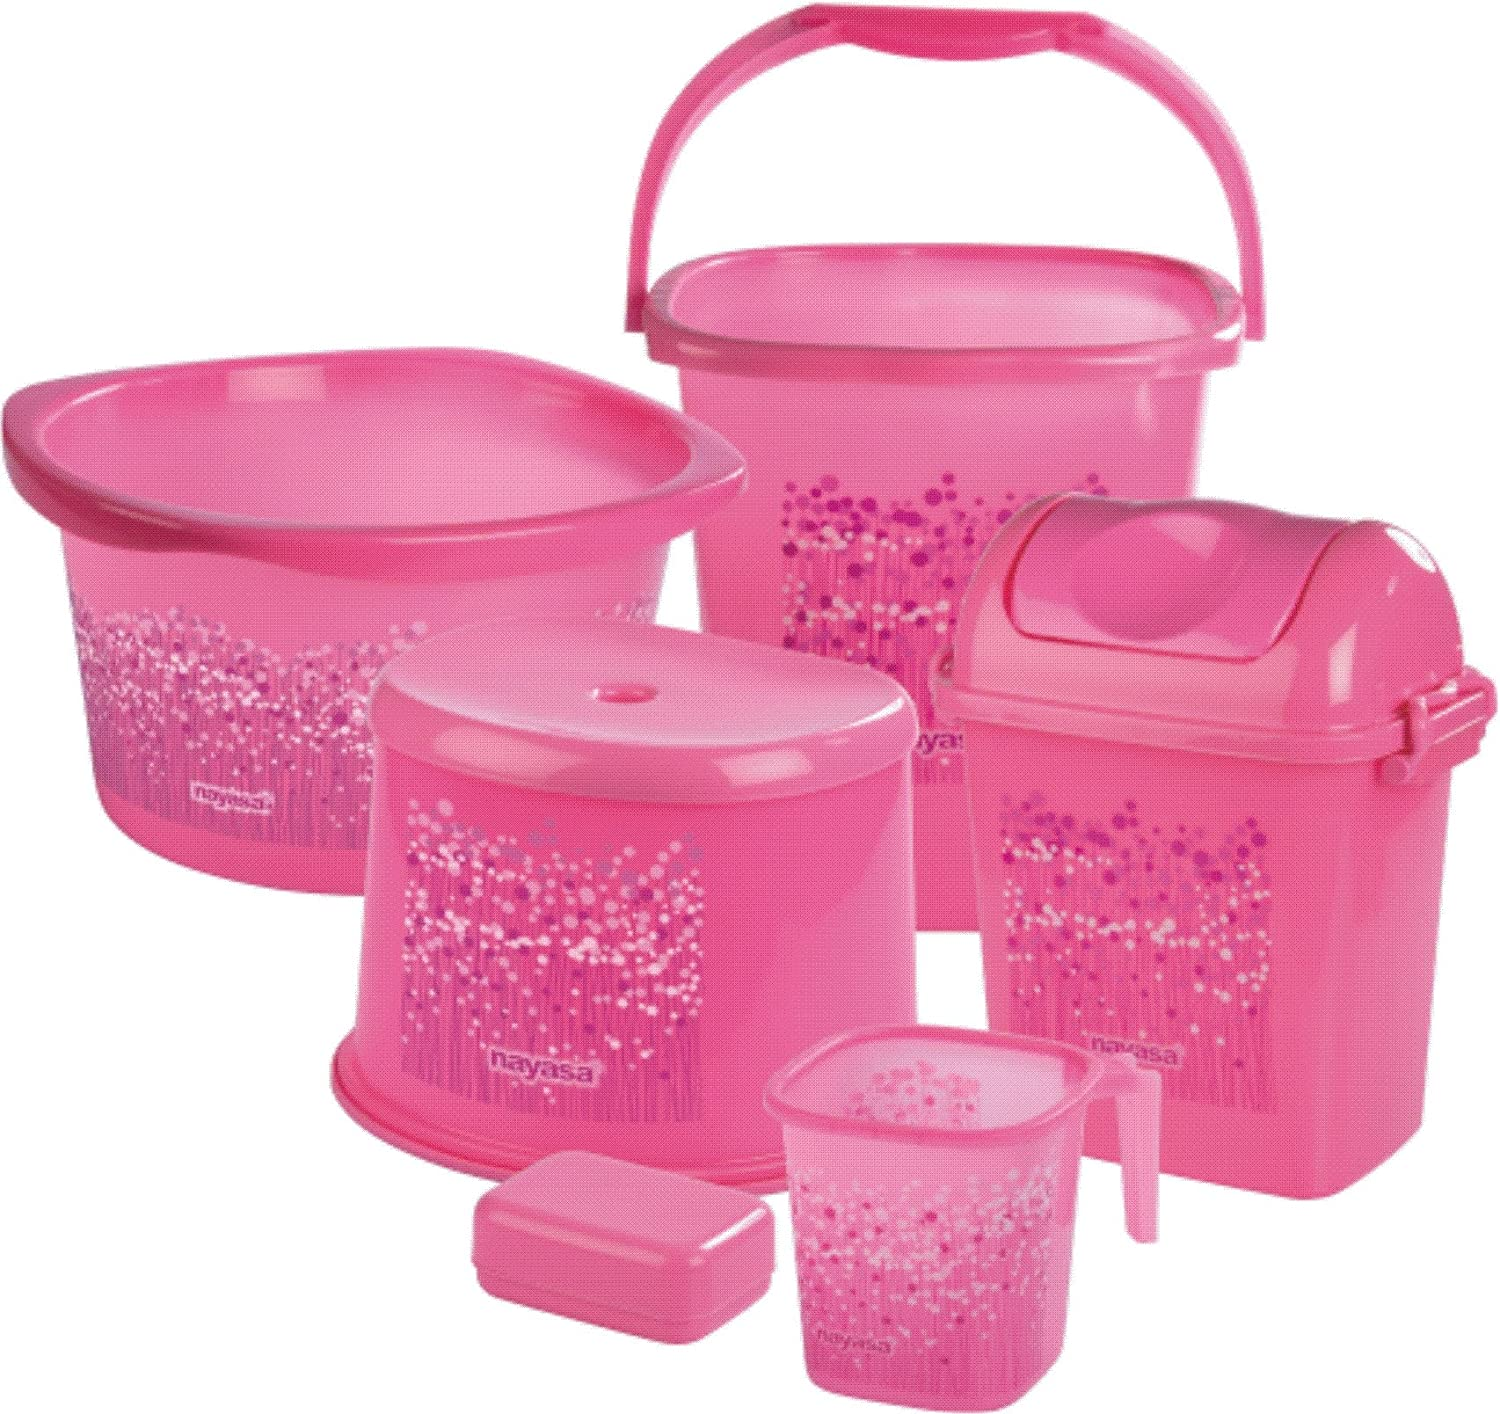 Charmant Nayasa Funk Bathroom Set Deluxe, 6 Pieces, Pink: Amazon.in: Home U0026 Kitchen